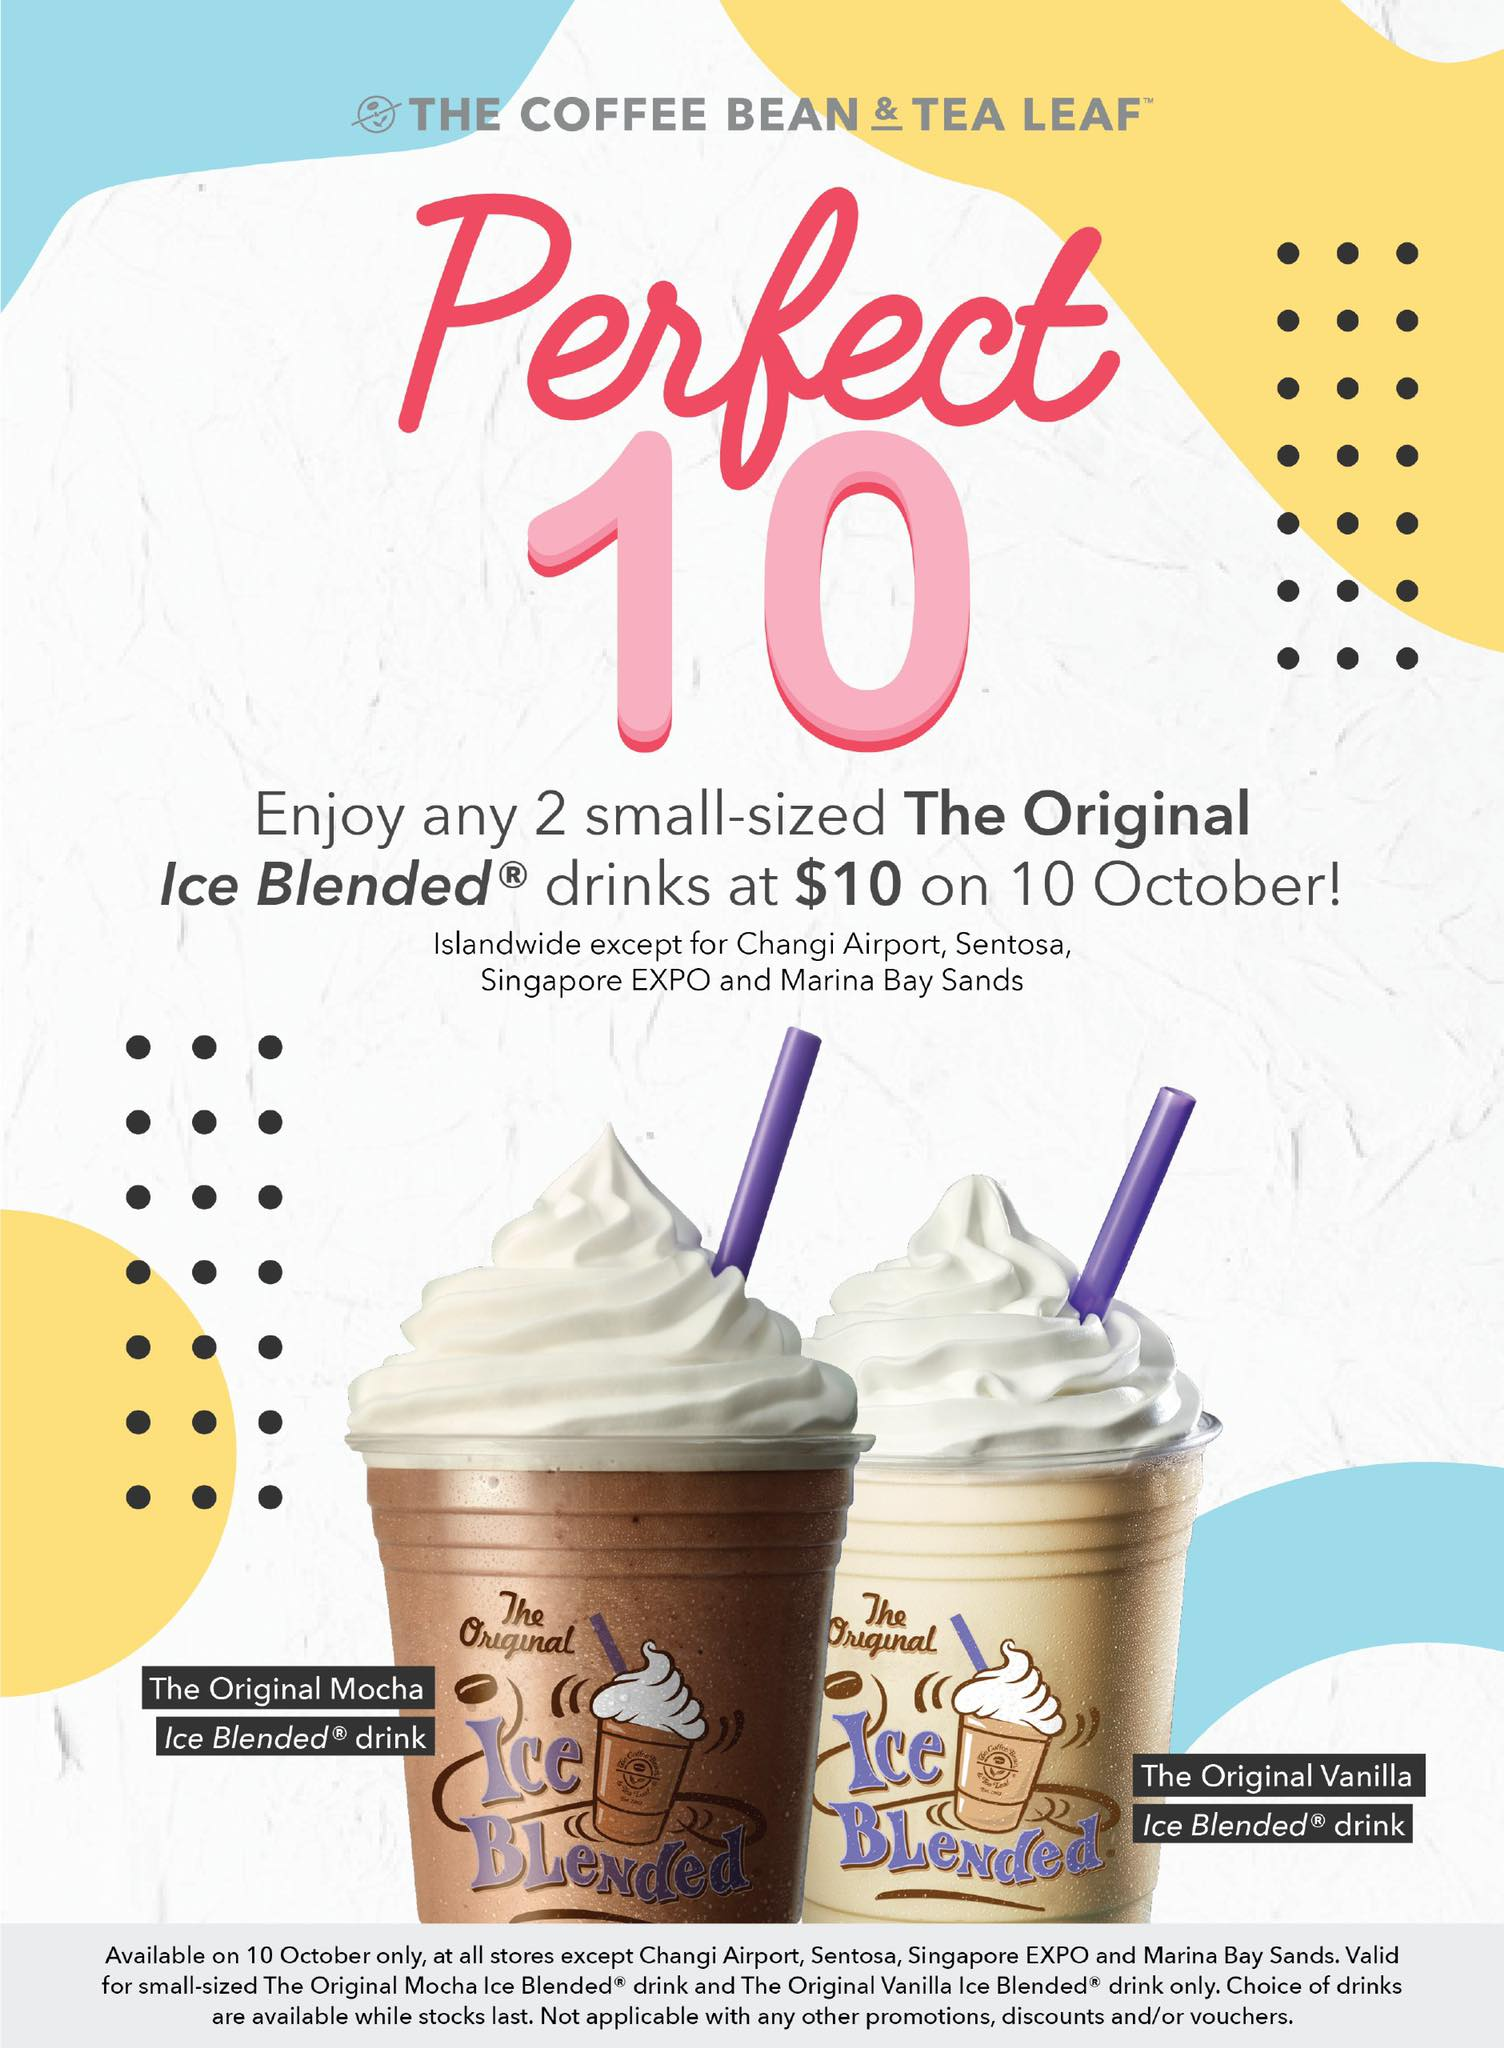 The Coffee Bean & Tea Leaf Singapore 10/10 $10 Drink Promotion only on 10 Oct 2019 | Why Not Deals & Promotions